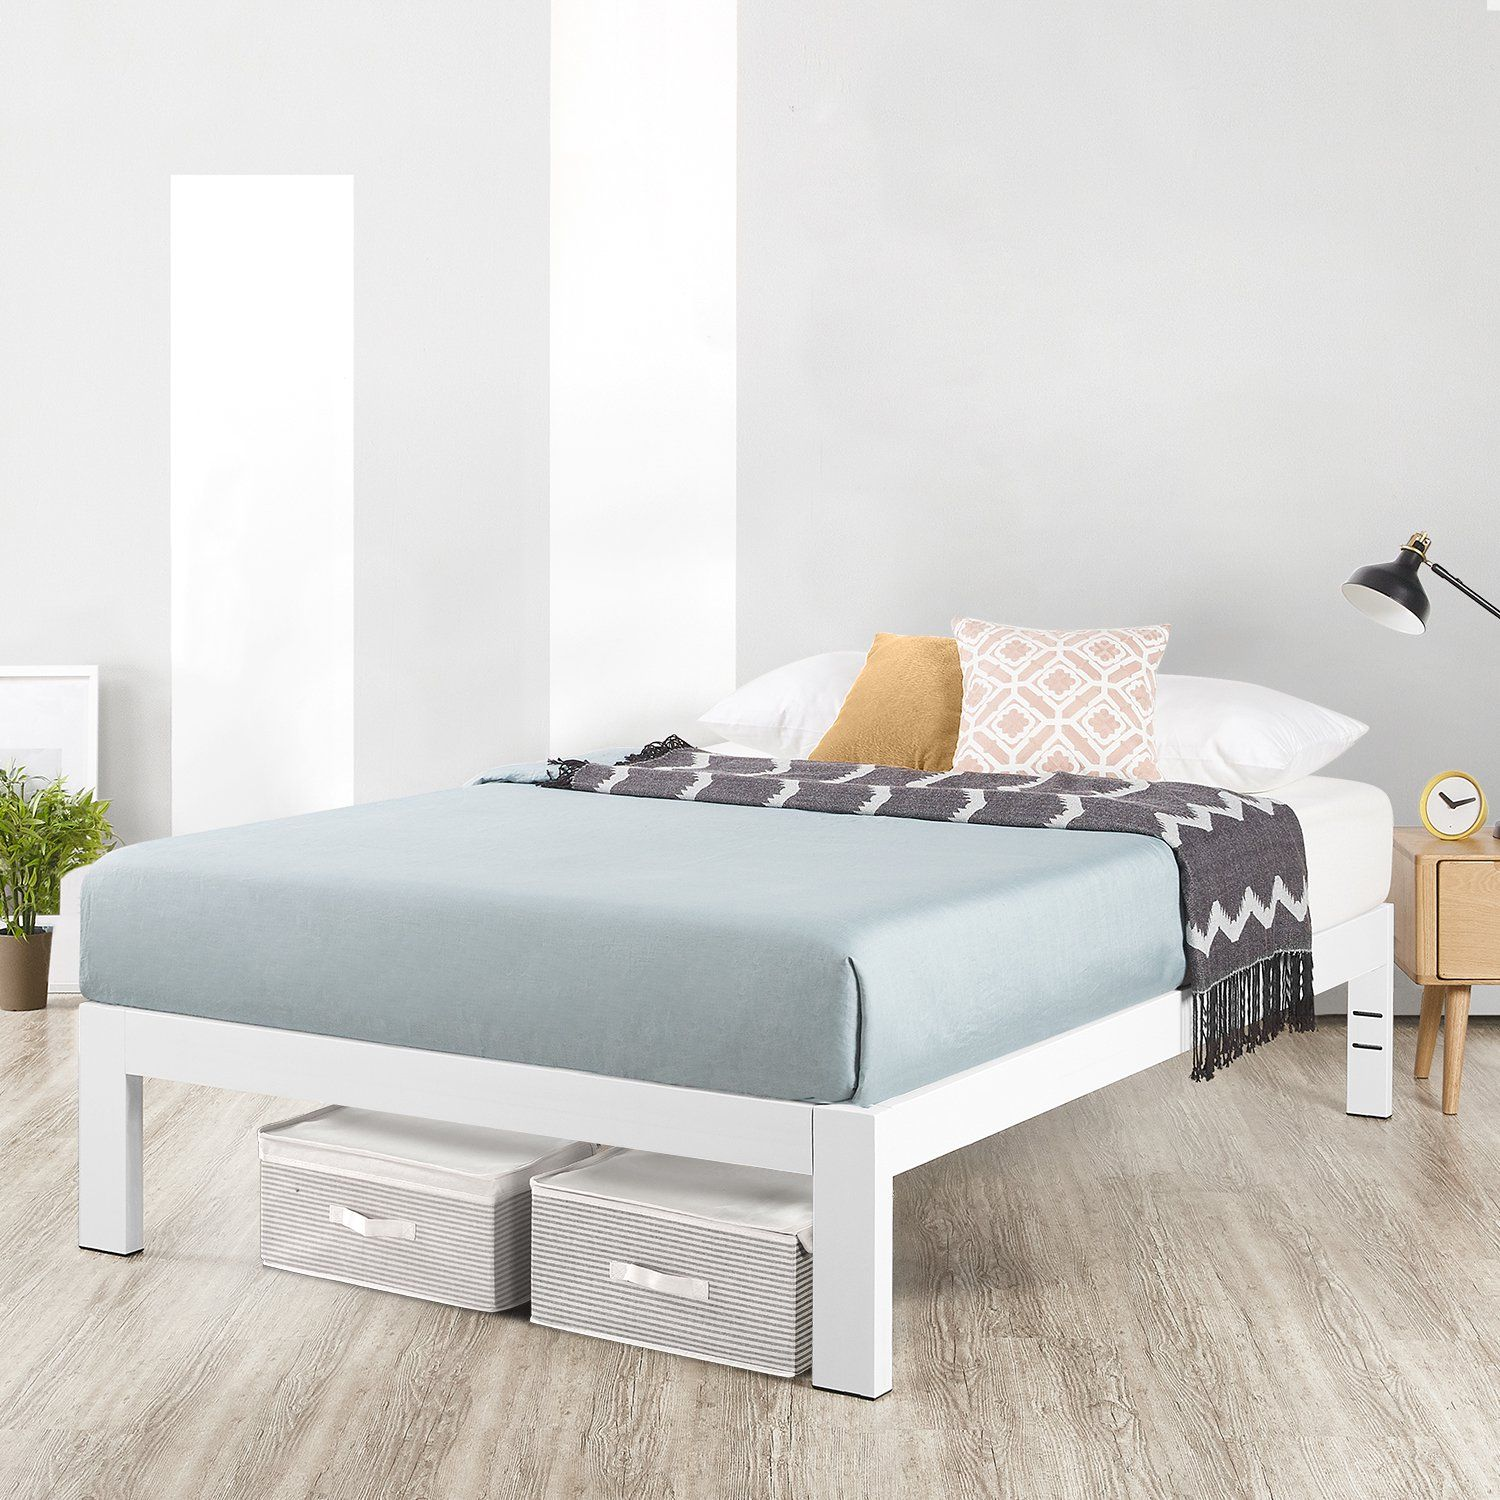 Best Price Mattress Model C Heavy Duty Steel Bed Frame